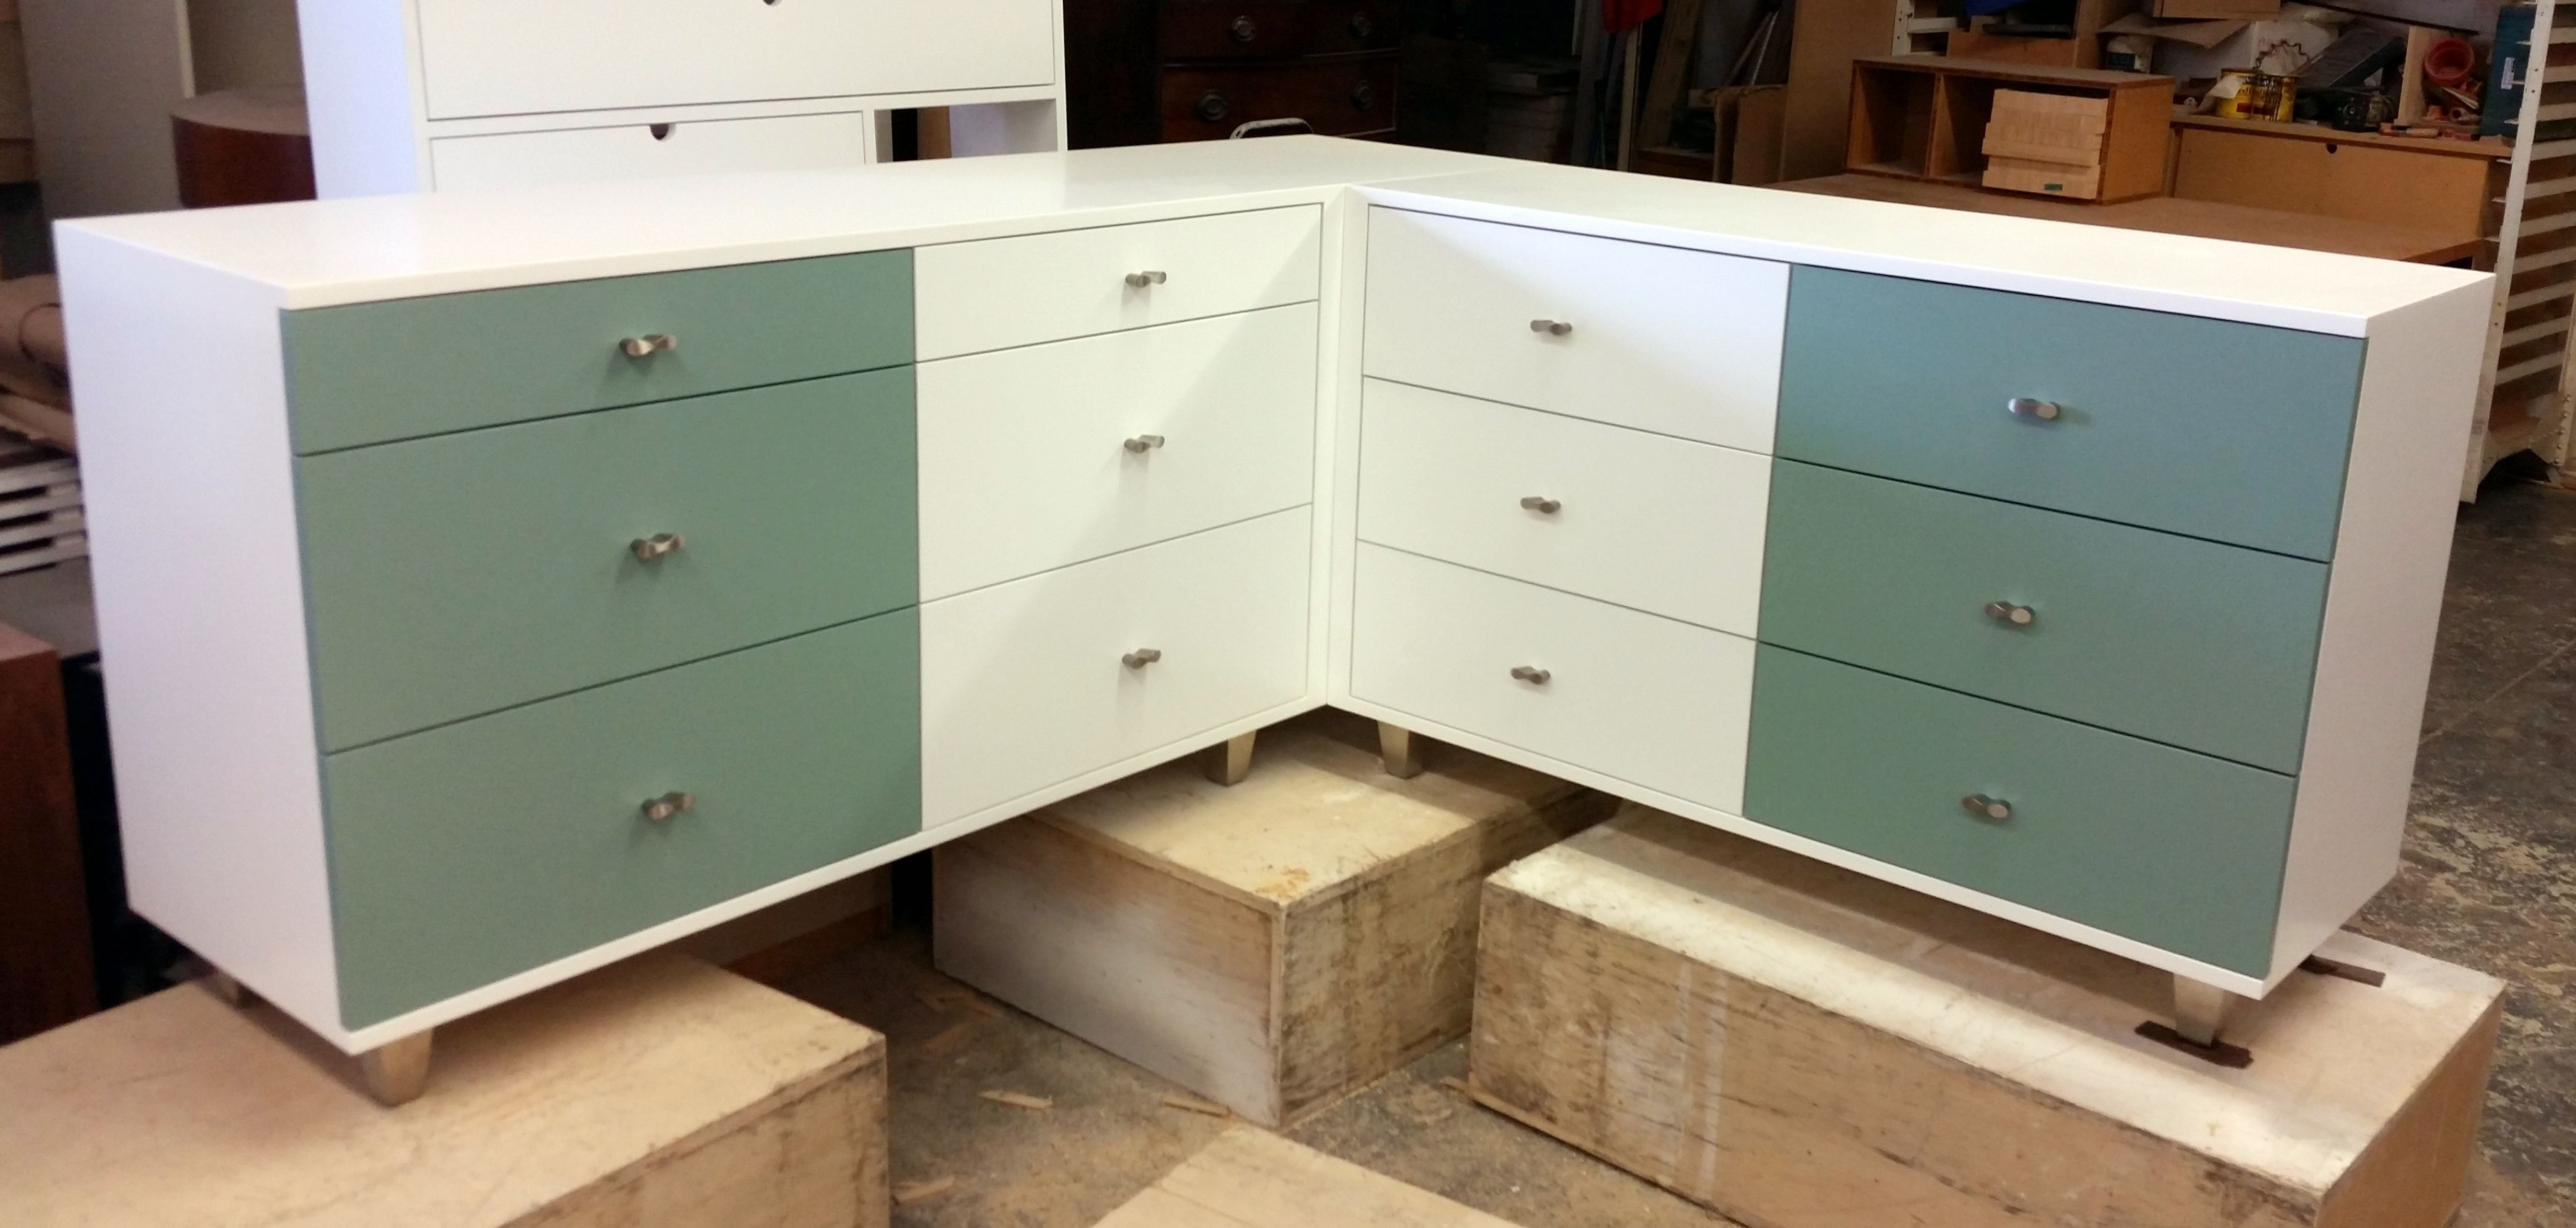 Amazing Custom L Shaped Corner Dresser In White Lacquer With Custom Green Accents.  #dresser #